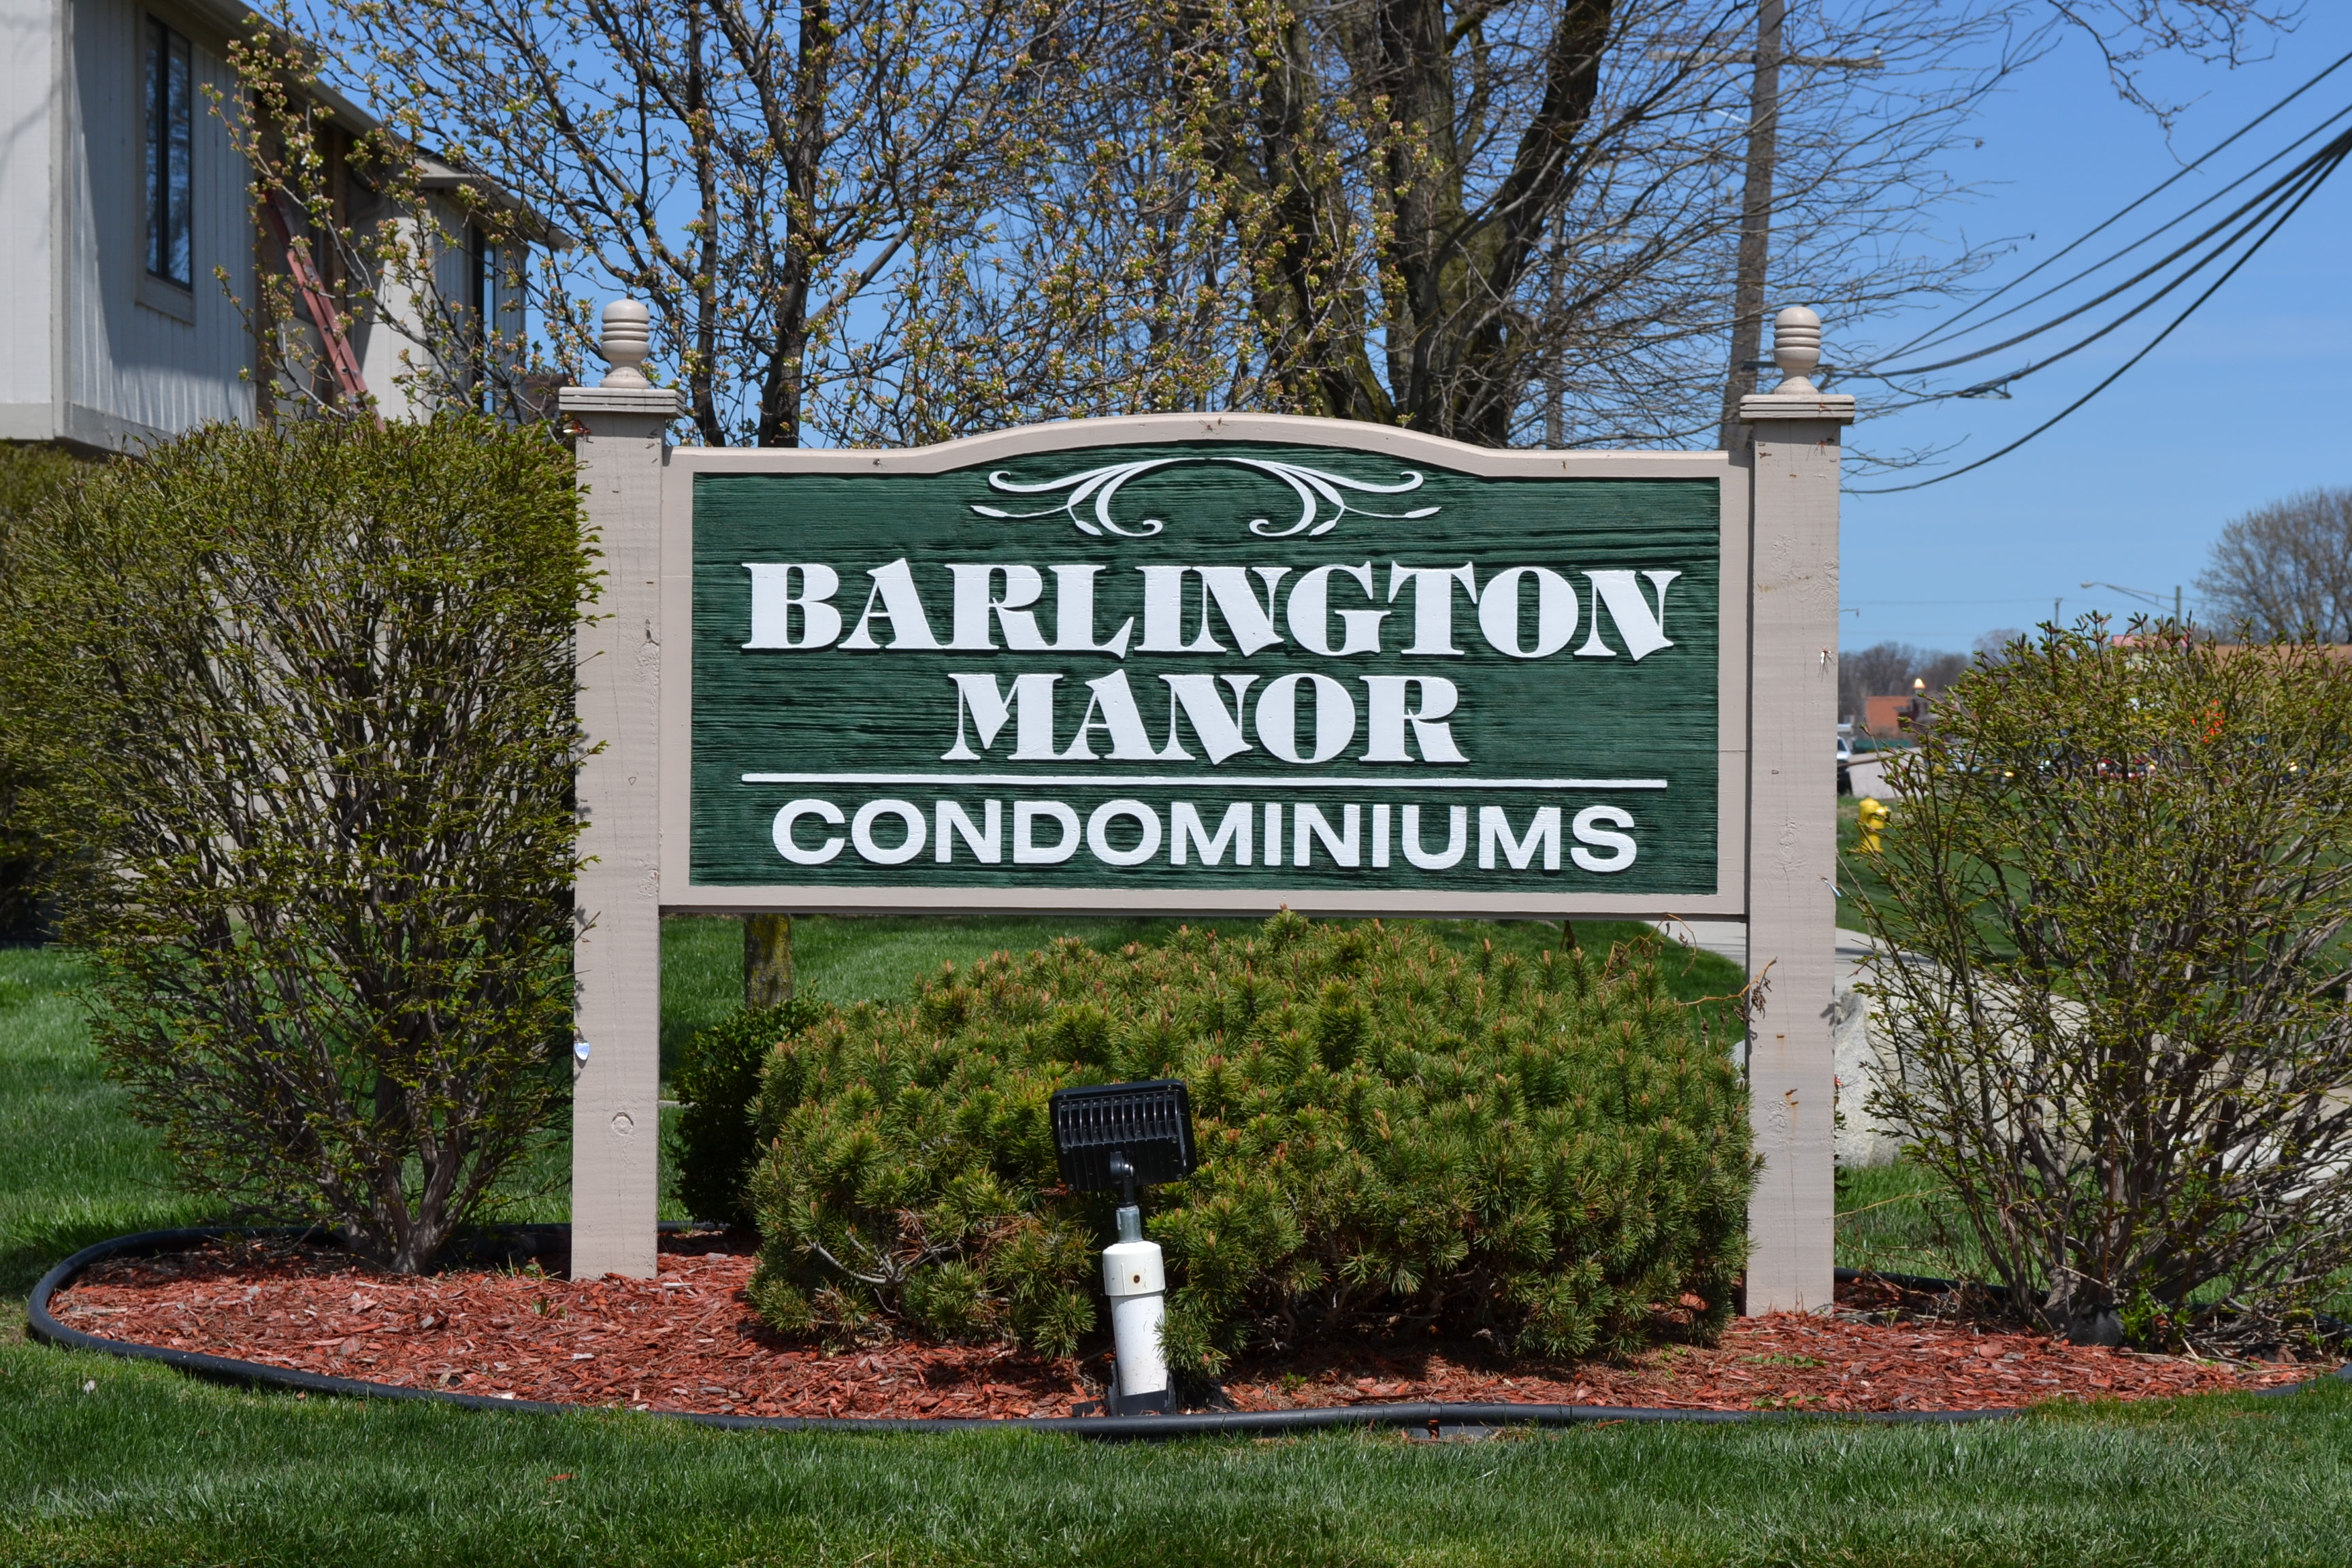 Barlington Manor Condo